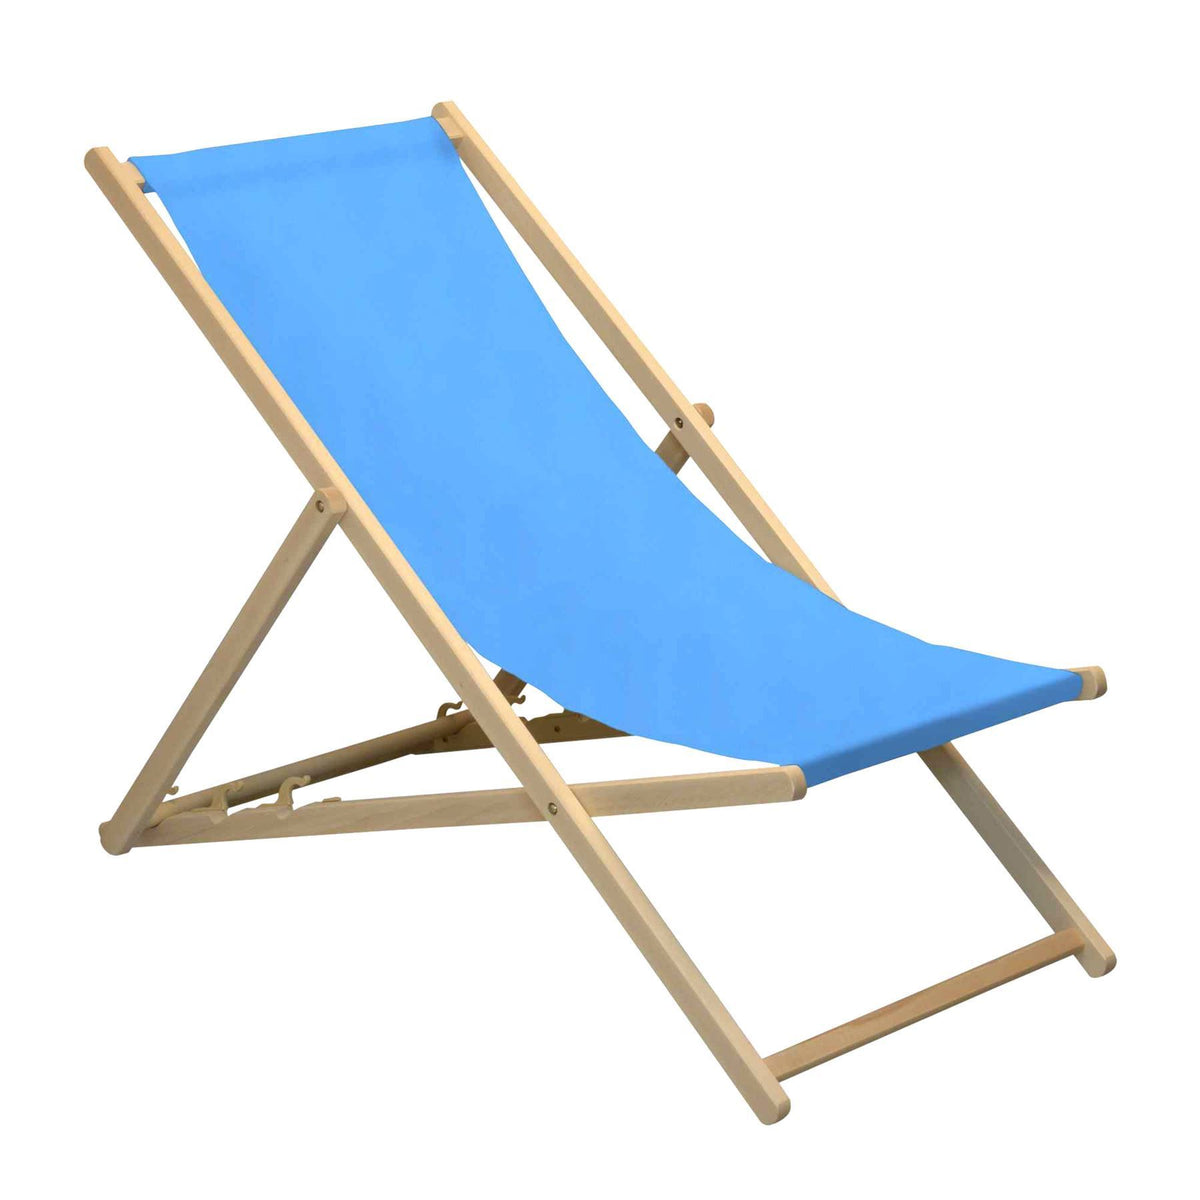 Harbour Housewares Beach Deck Chair - Light Blue